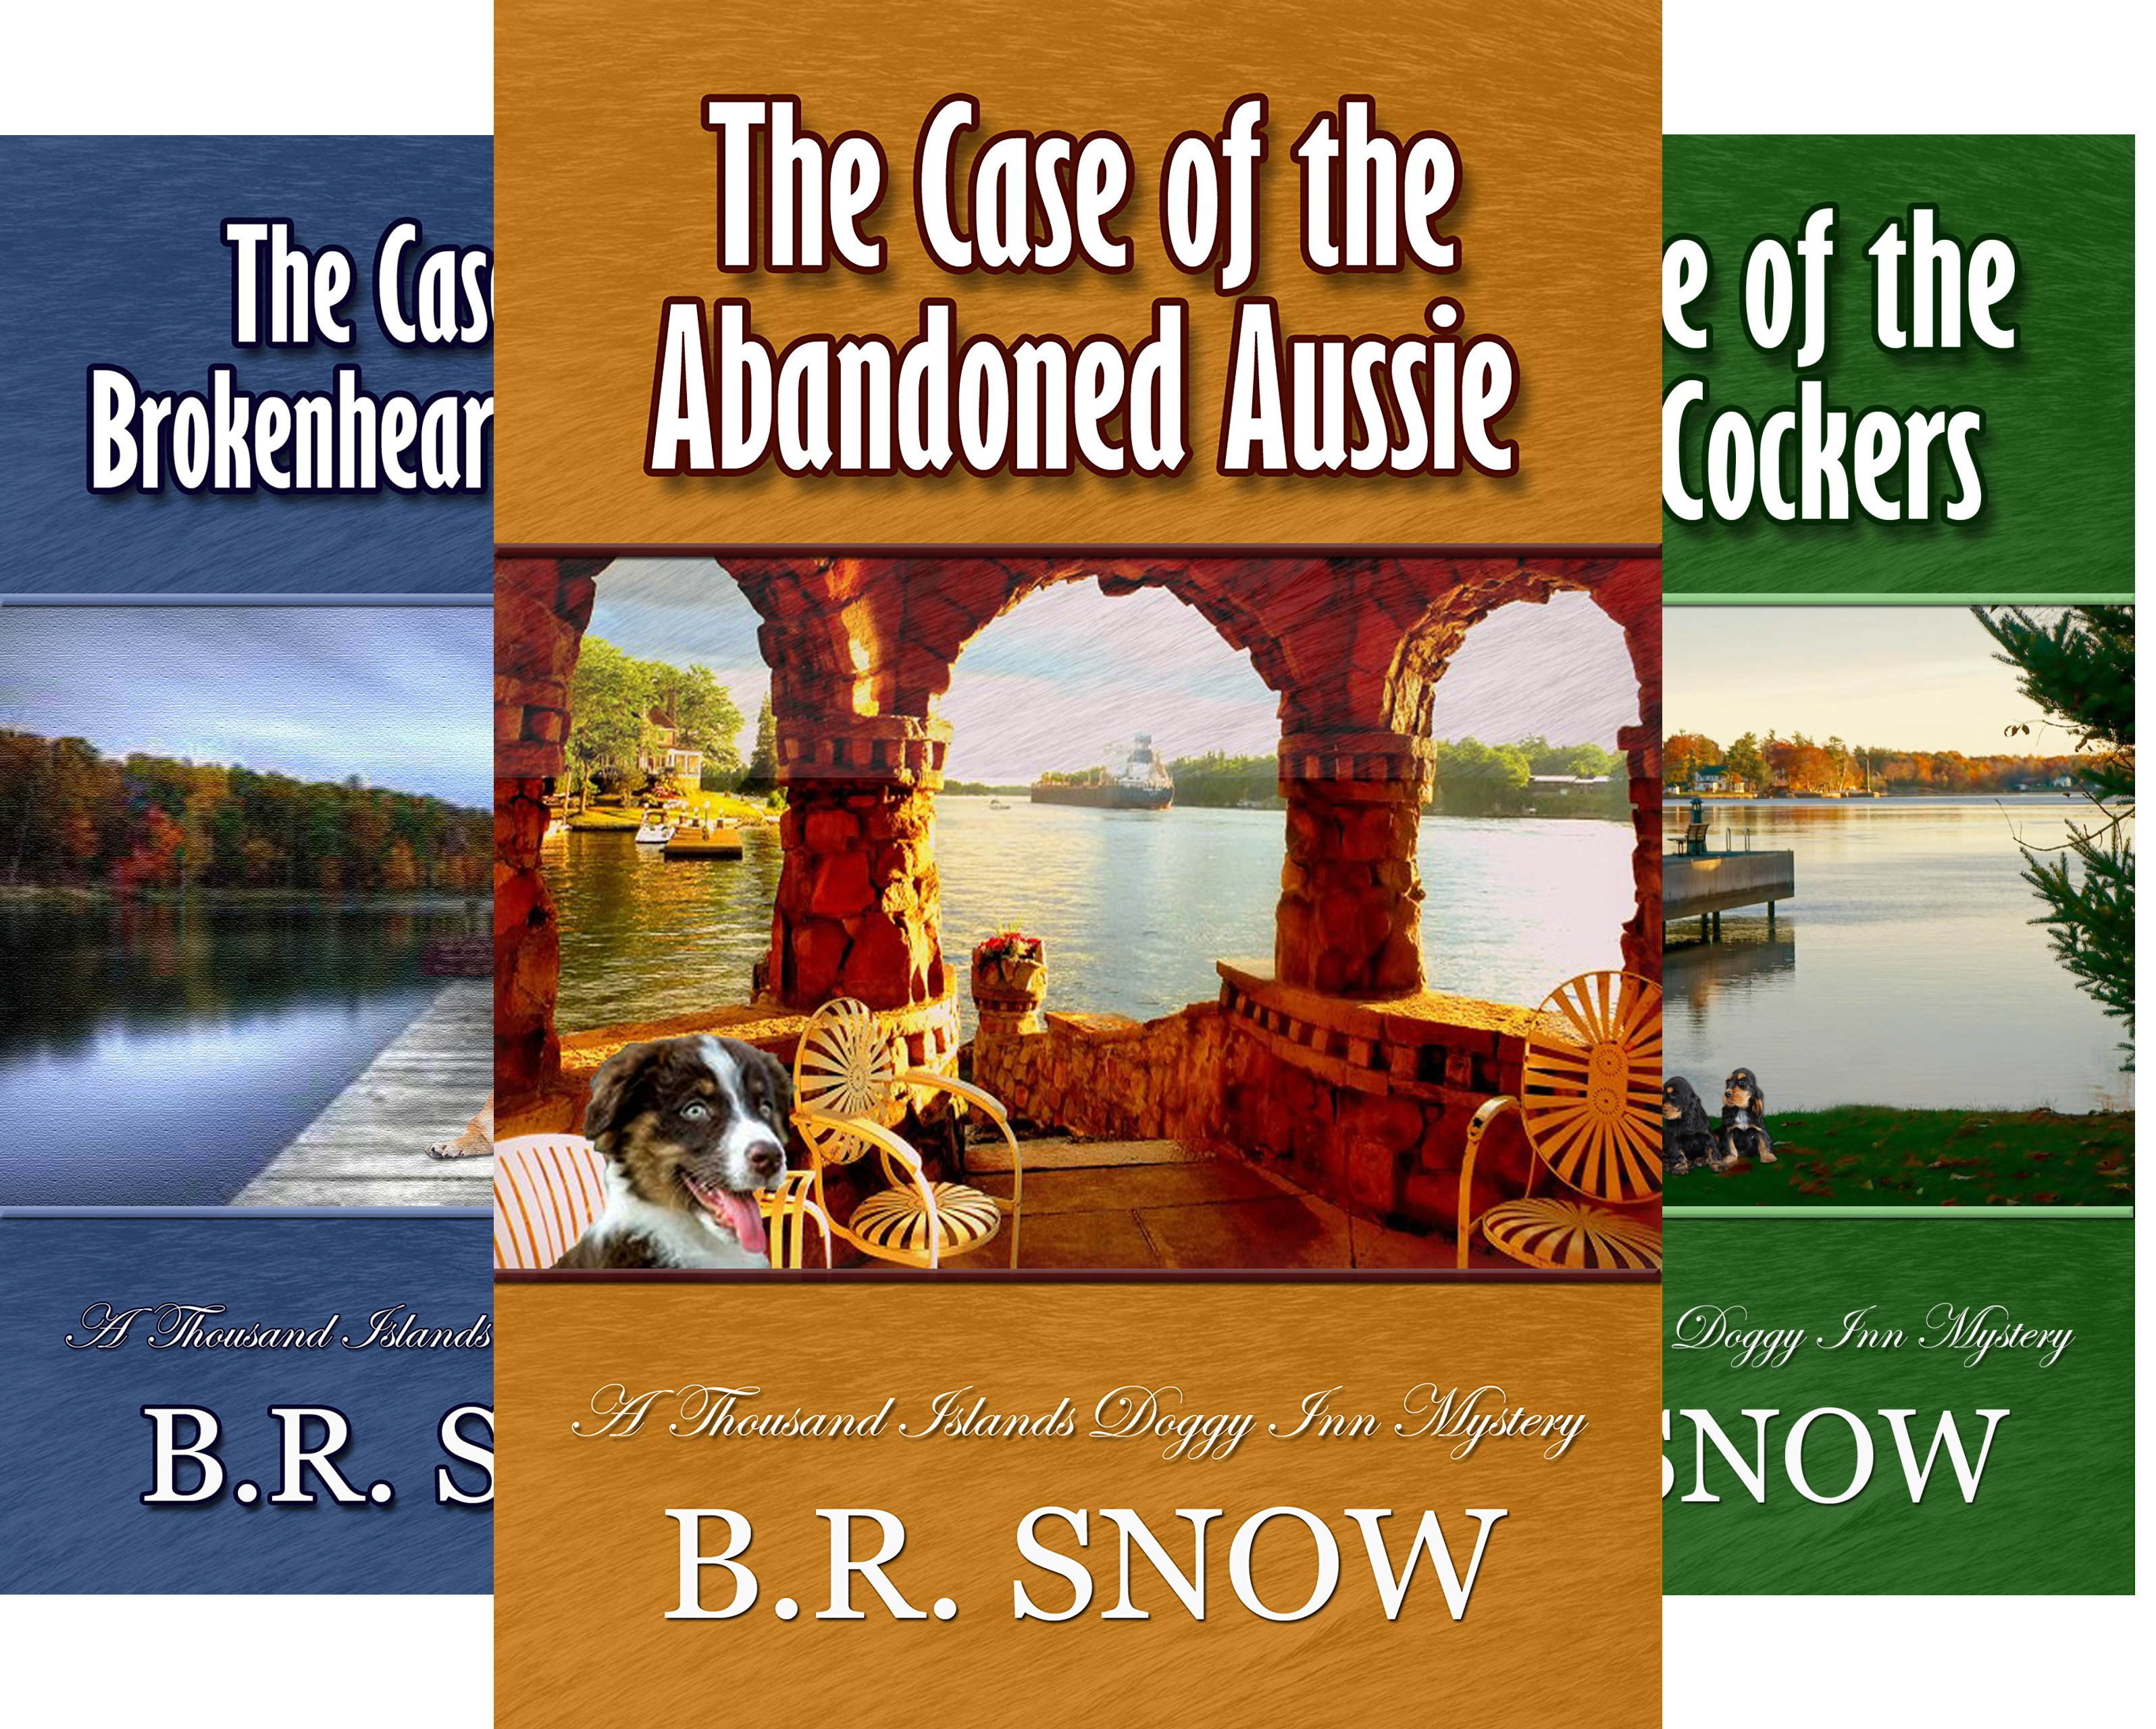 The Thousand Islands Doggy Inn Mysteries (6 Book Series)